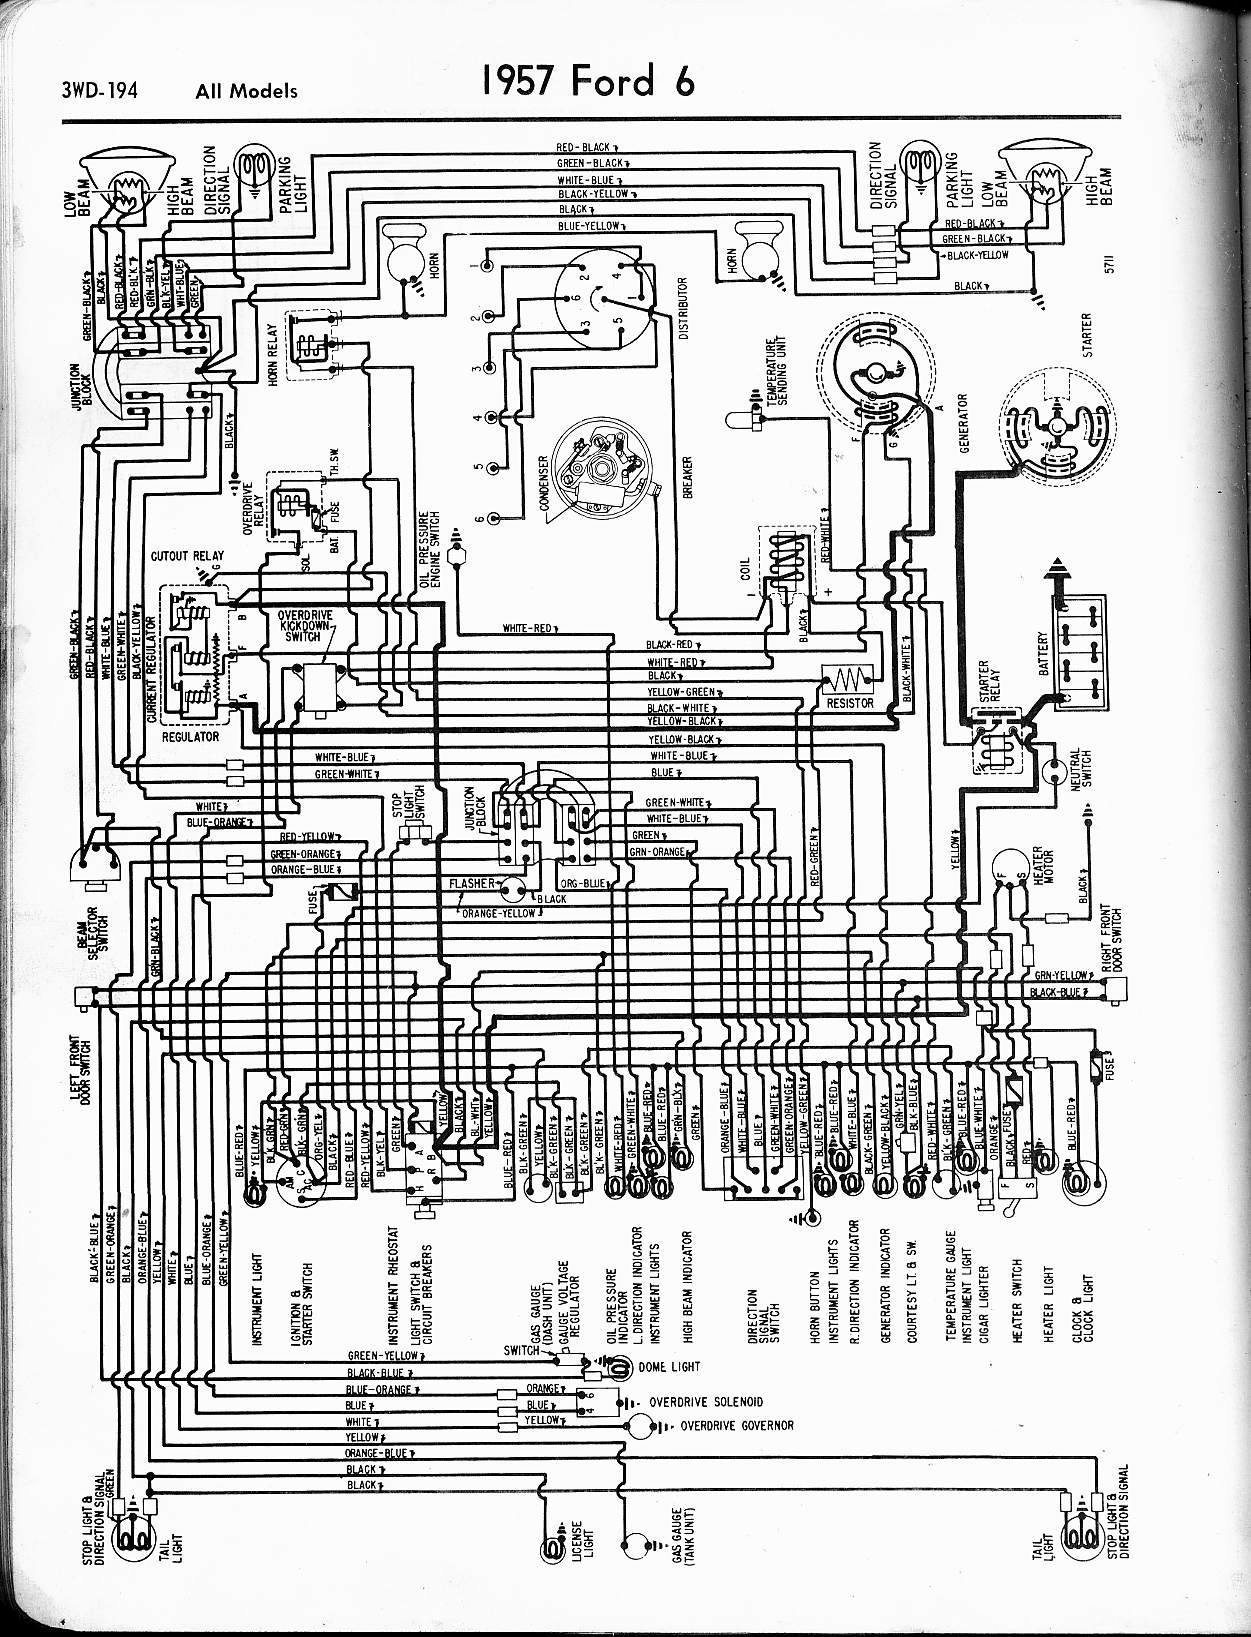 57_ford_wiring ford diagrams ford ltl 9000 wiring diagram at edmiracle.co